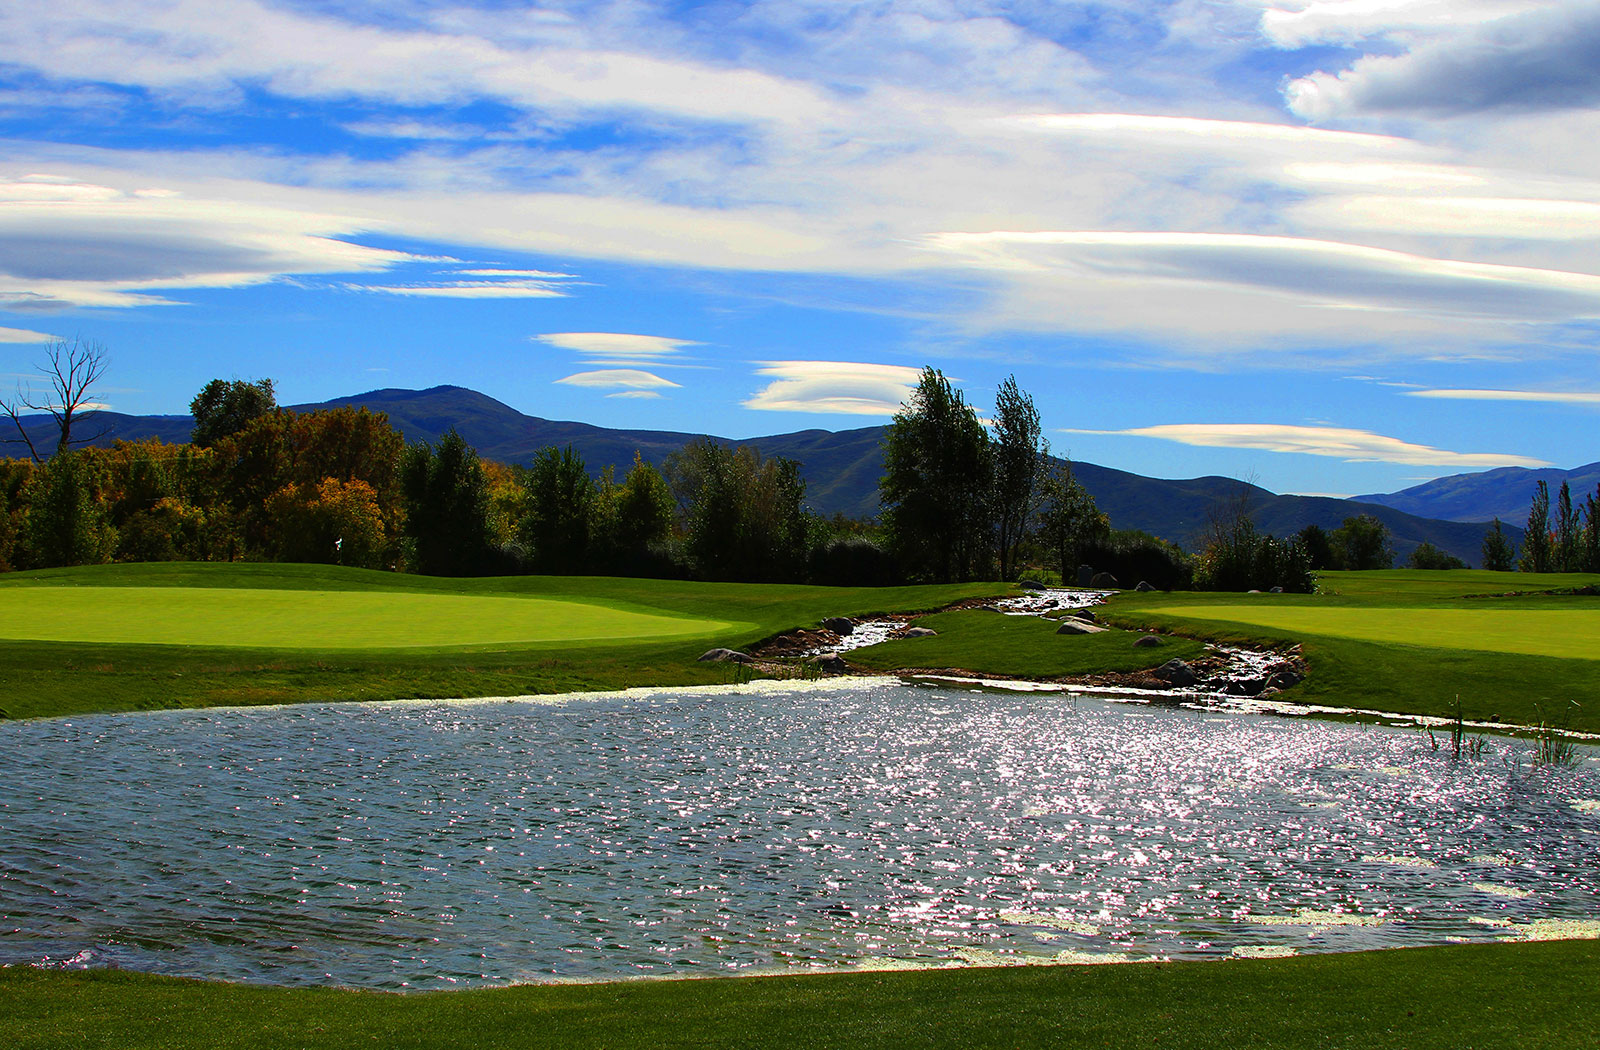 A pond separates two golf greens at Crater Springs golf course at the Homestead